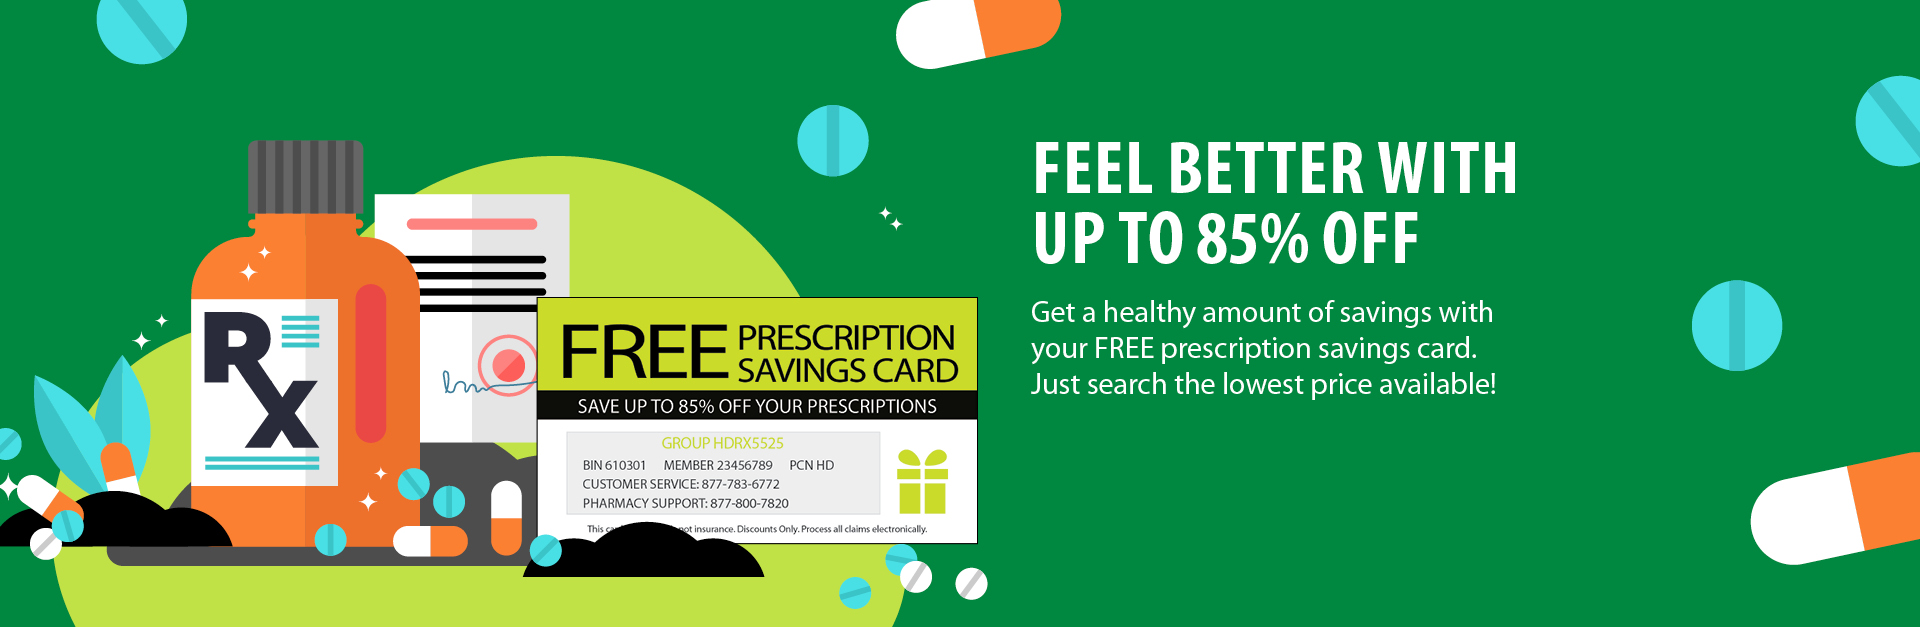 Start saving on your prescriptions today! Enjoy your free prescription savings card as one of your instant savings benefits by Rewards. It can be used by everyone in your household, including pets!